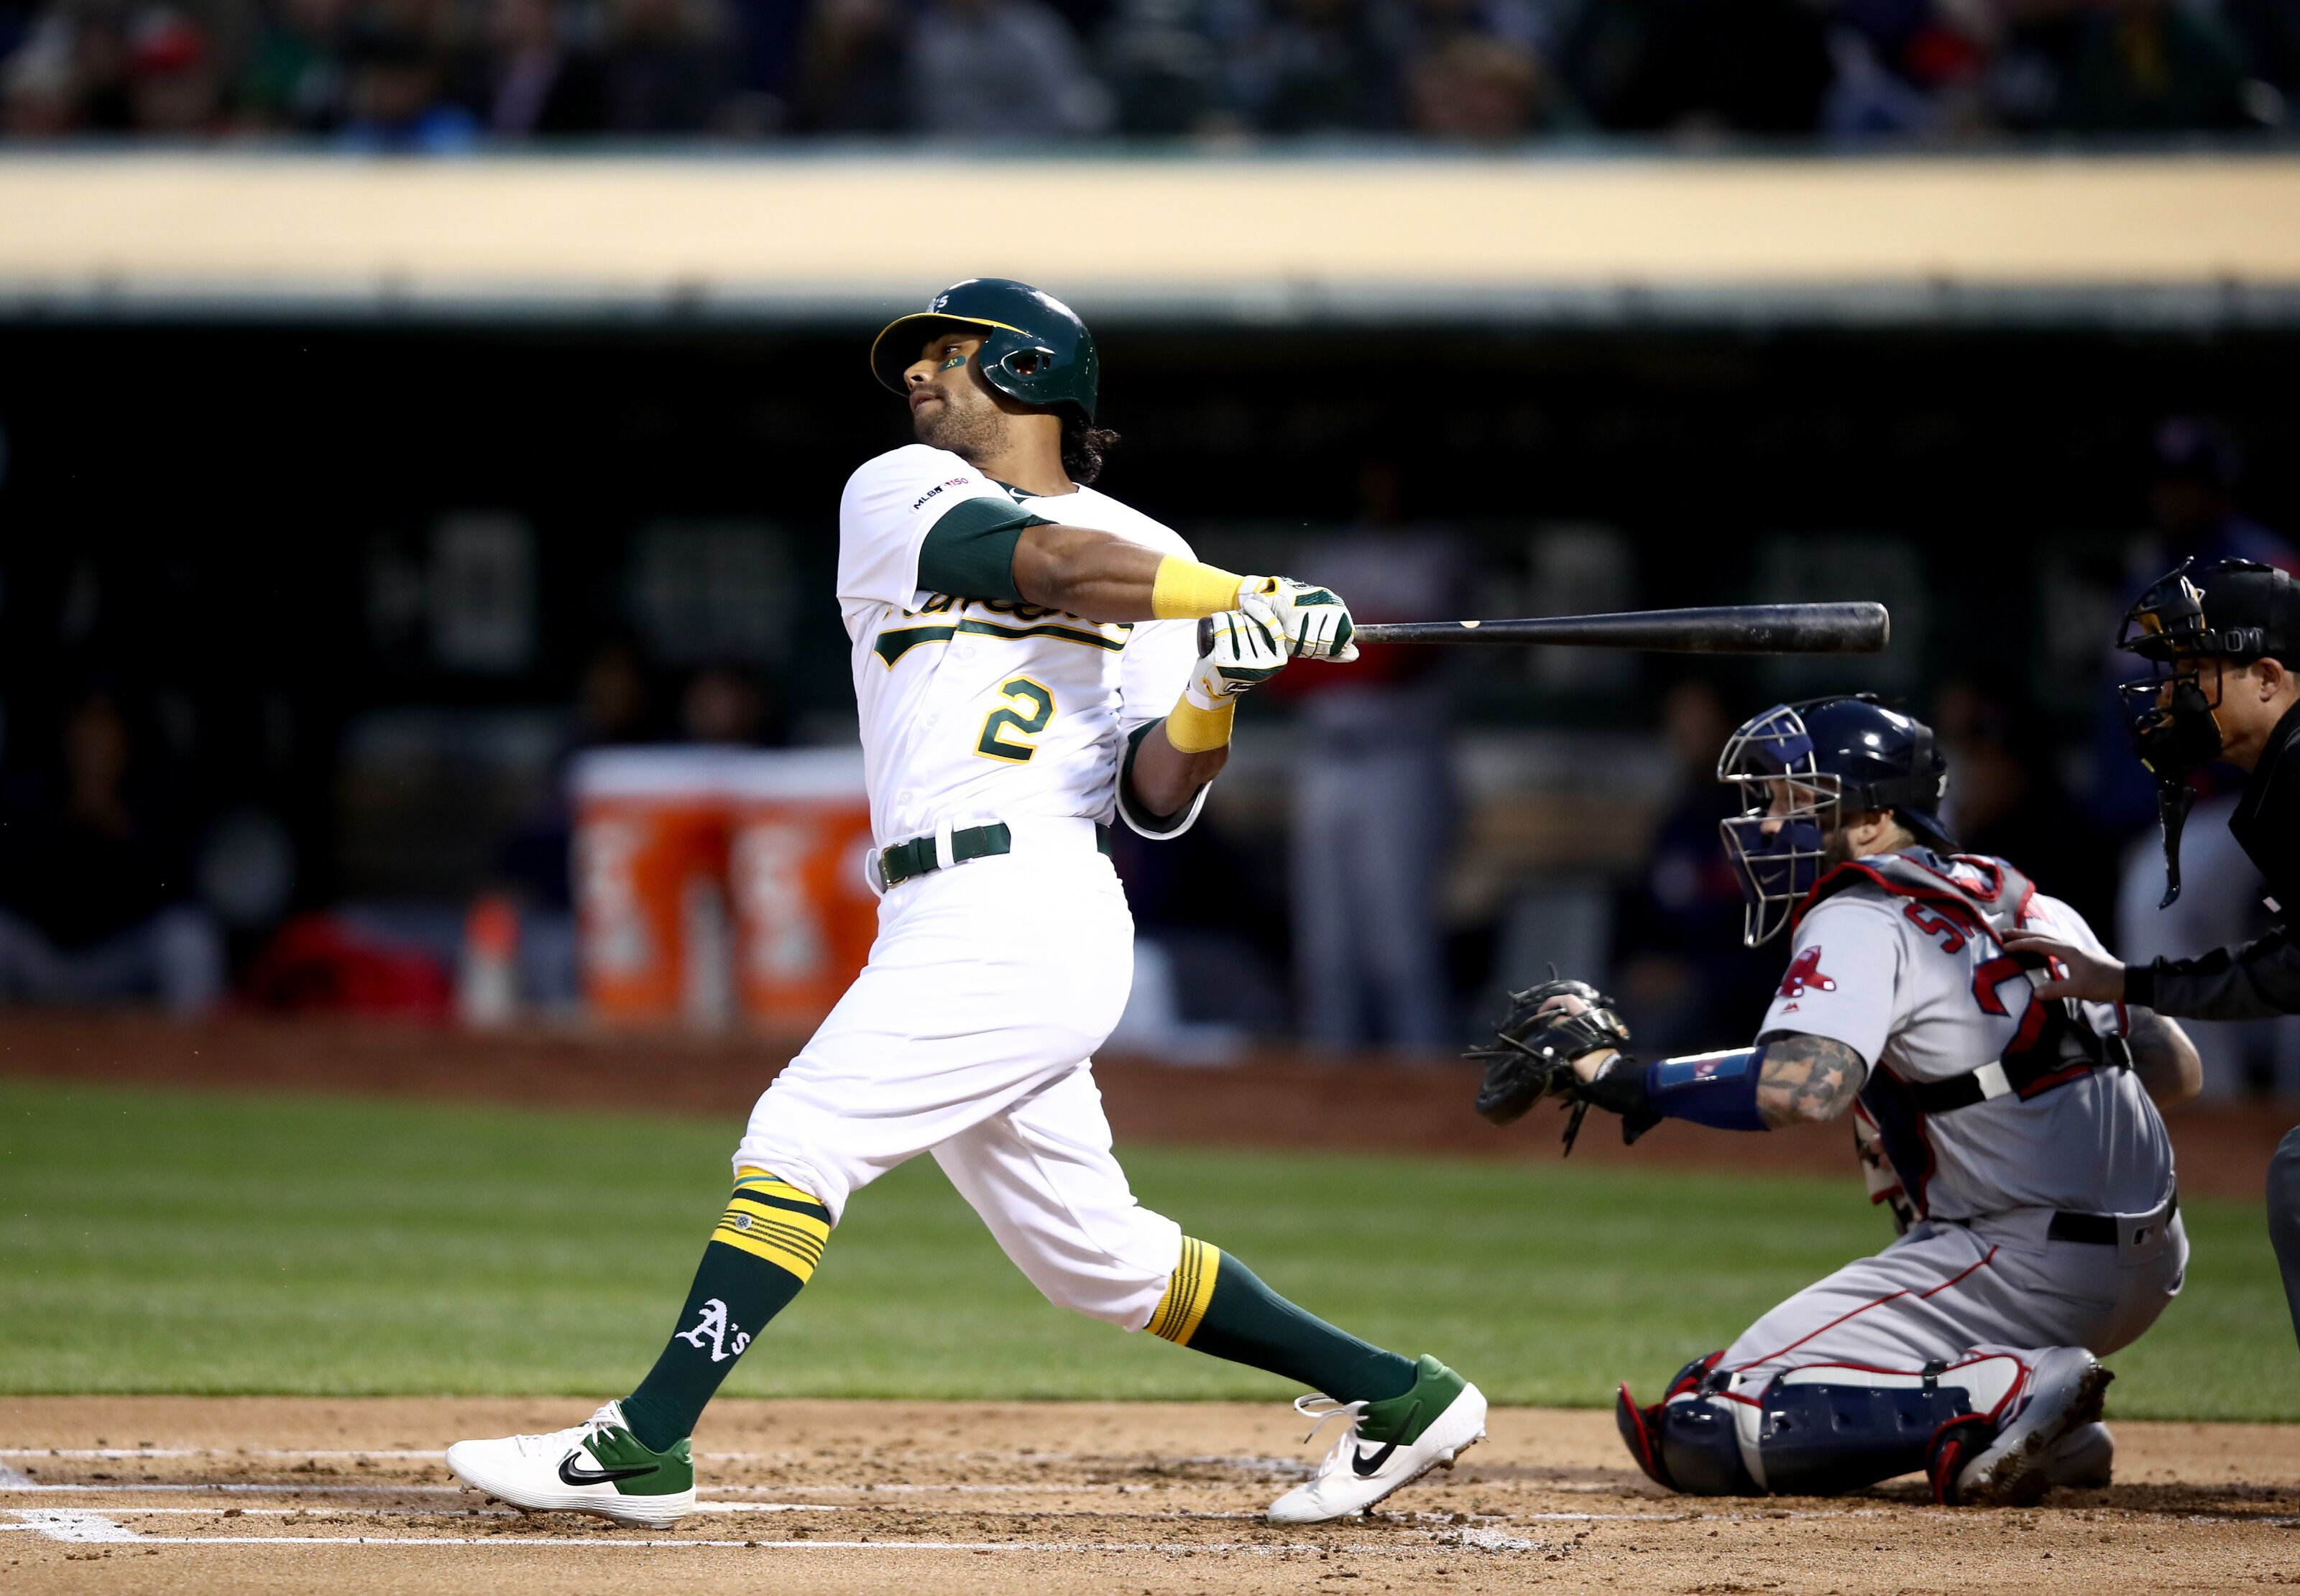 Oakland Athletics: Extending Khris Davis was the right move